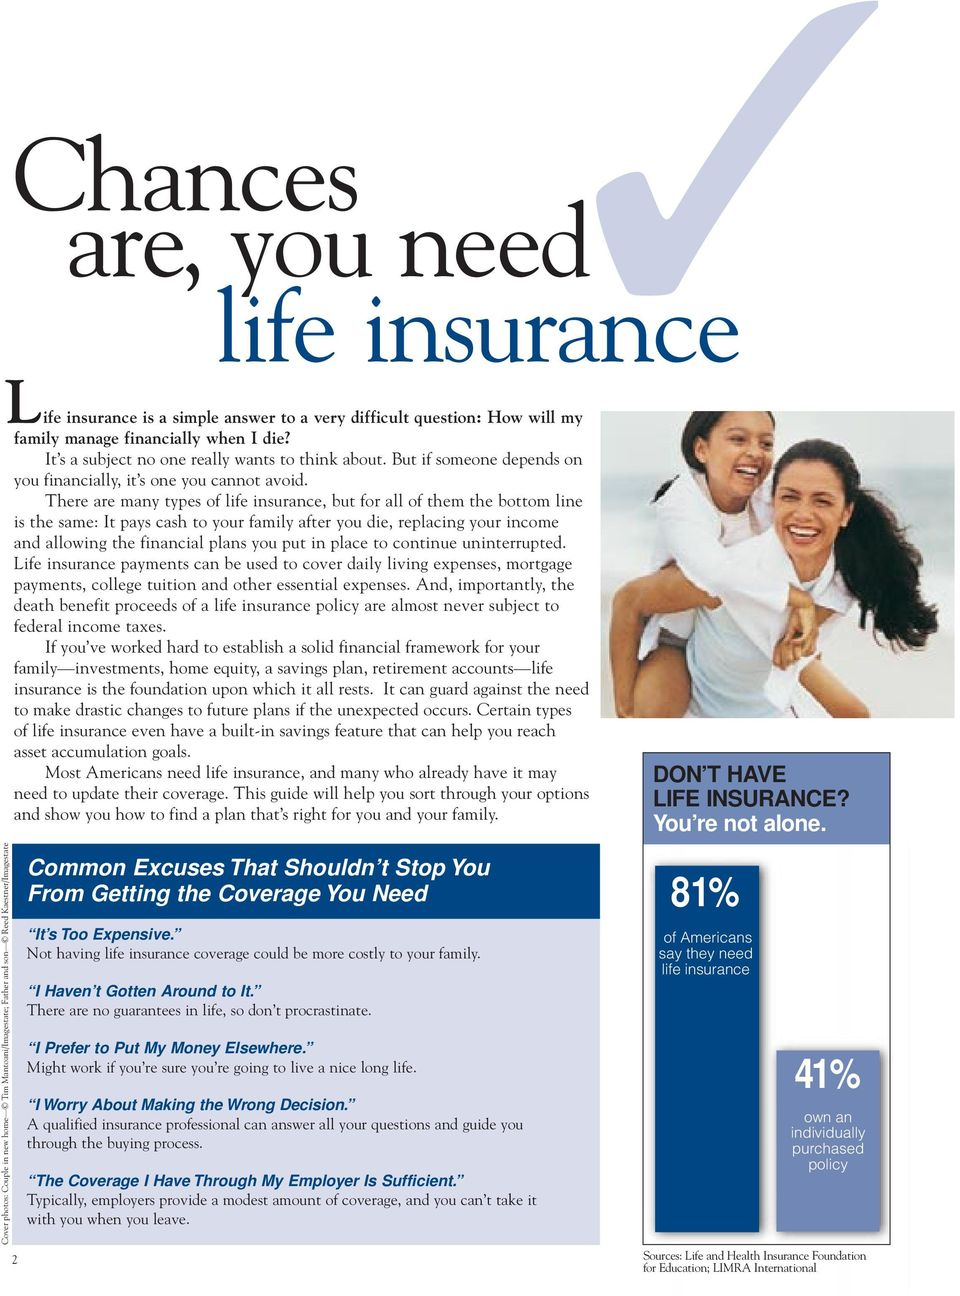 There are many types of life insurance, but for all of them the bottom line is the same: It pays cash to your family after you die, replacing your income and allowing the financial plans you put in